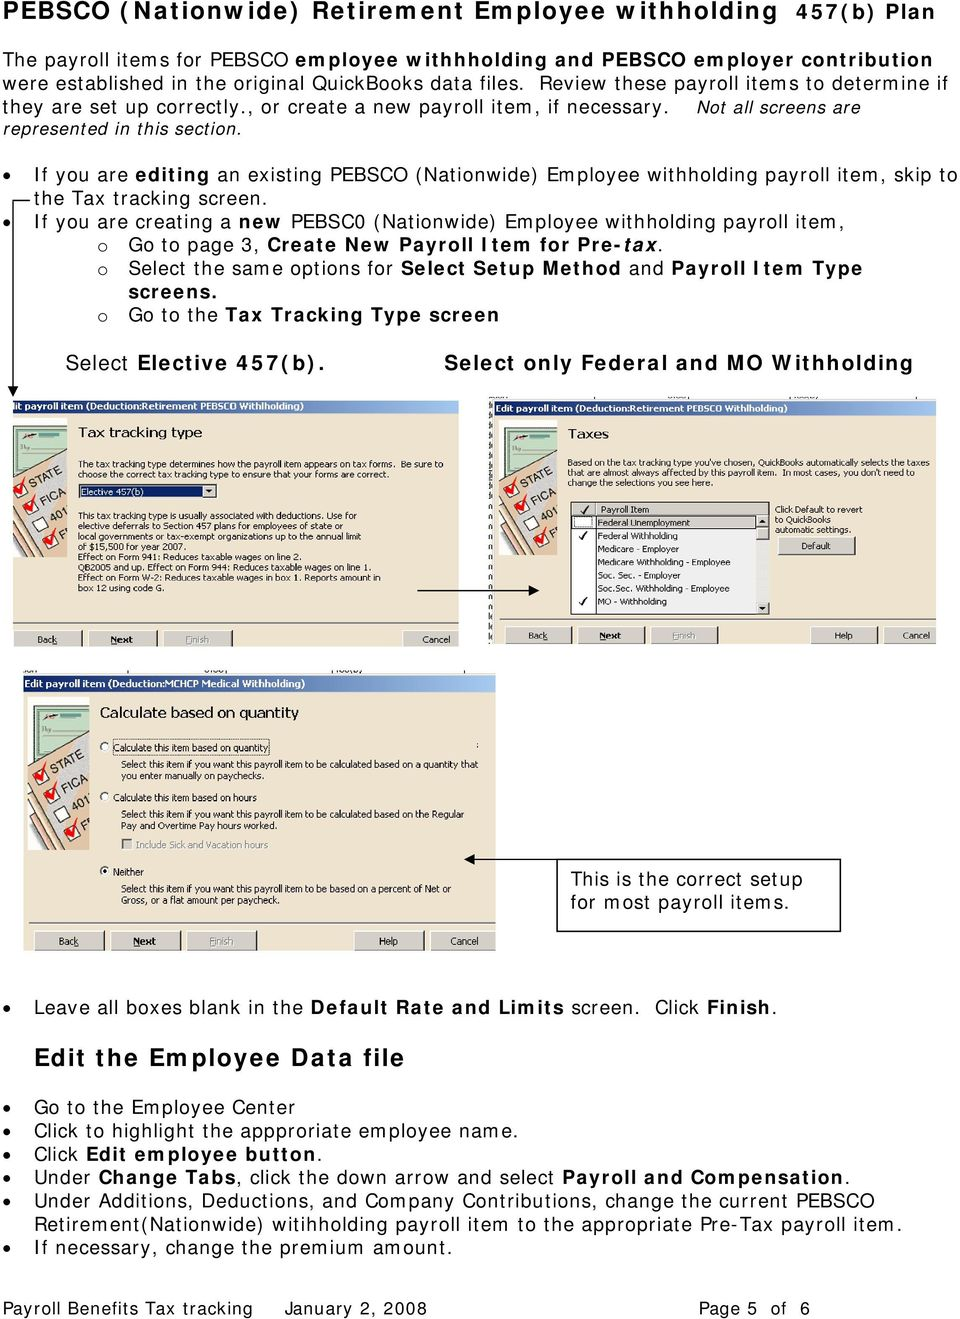 If you are editing an existing PEBSCO (Nationwide) Employee withholding payroll item, skip to the Tax tracking screen.